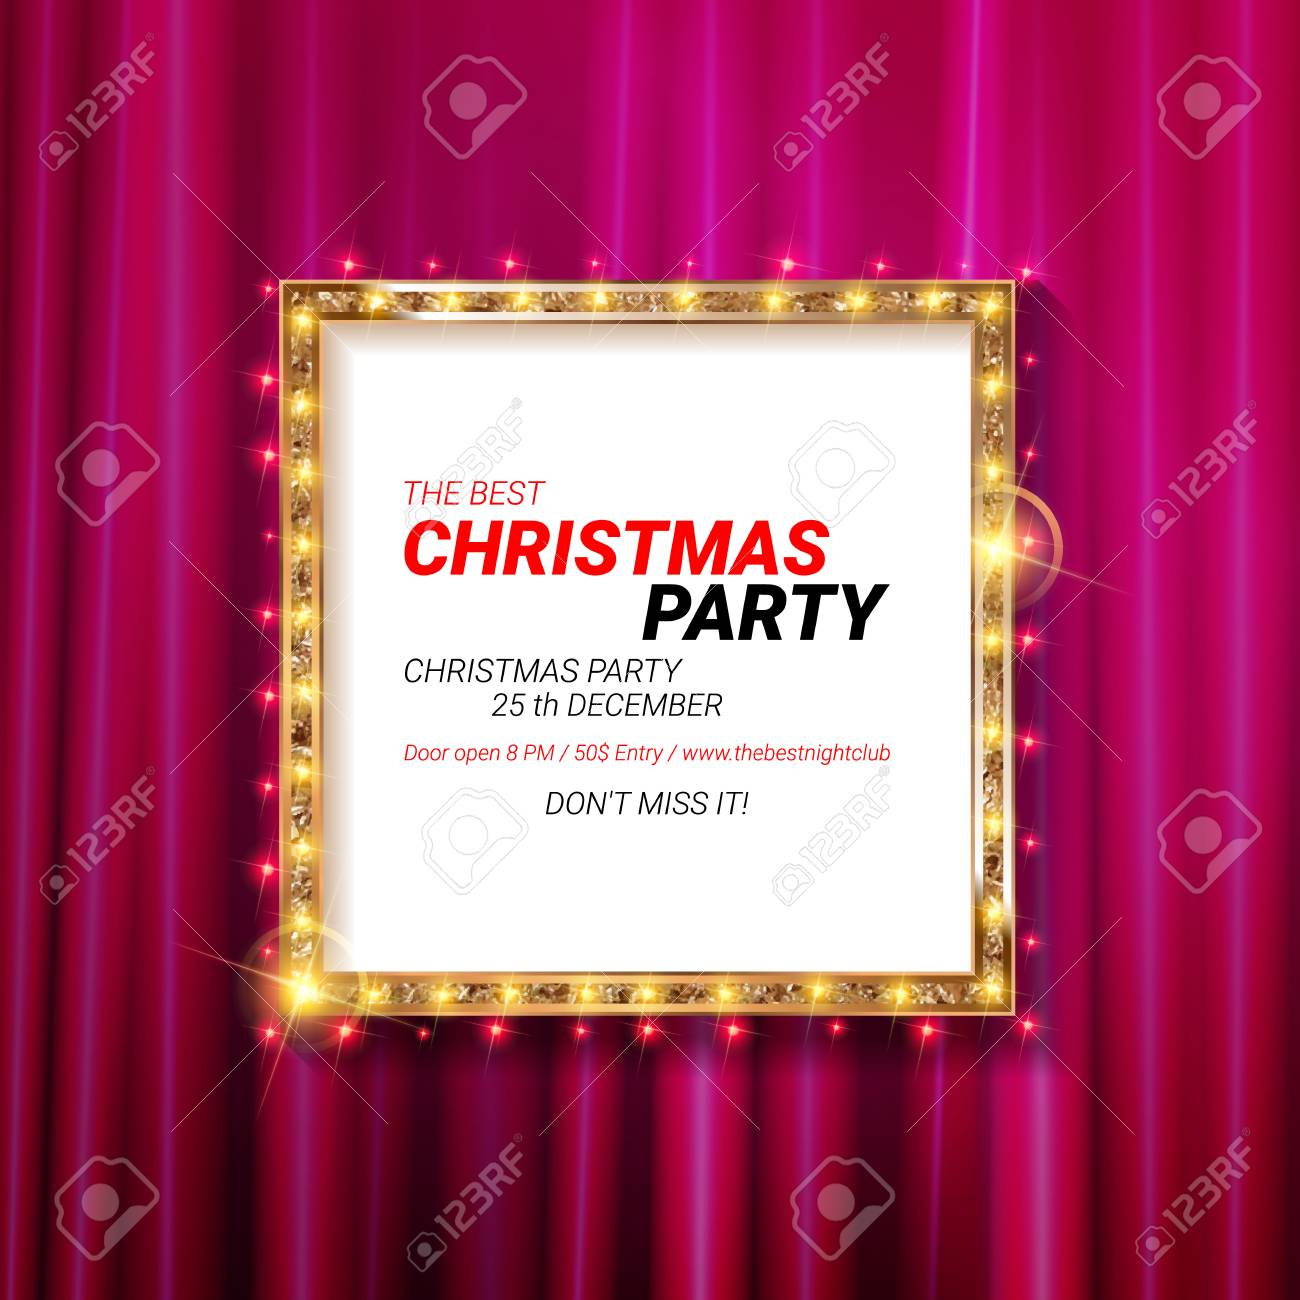 Christmas Party 2019 Clipart.Invitation Merry Christmas Party 2019 Poster Banner And Card